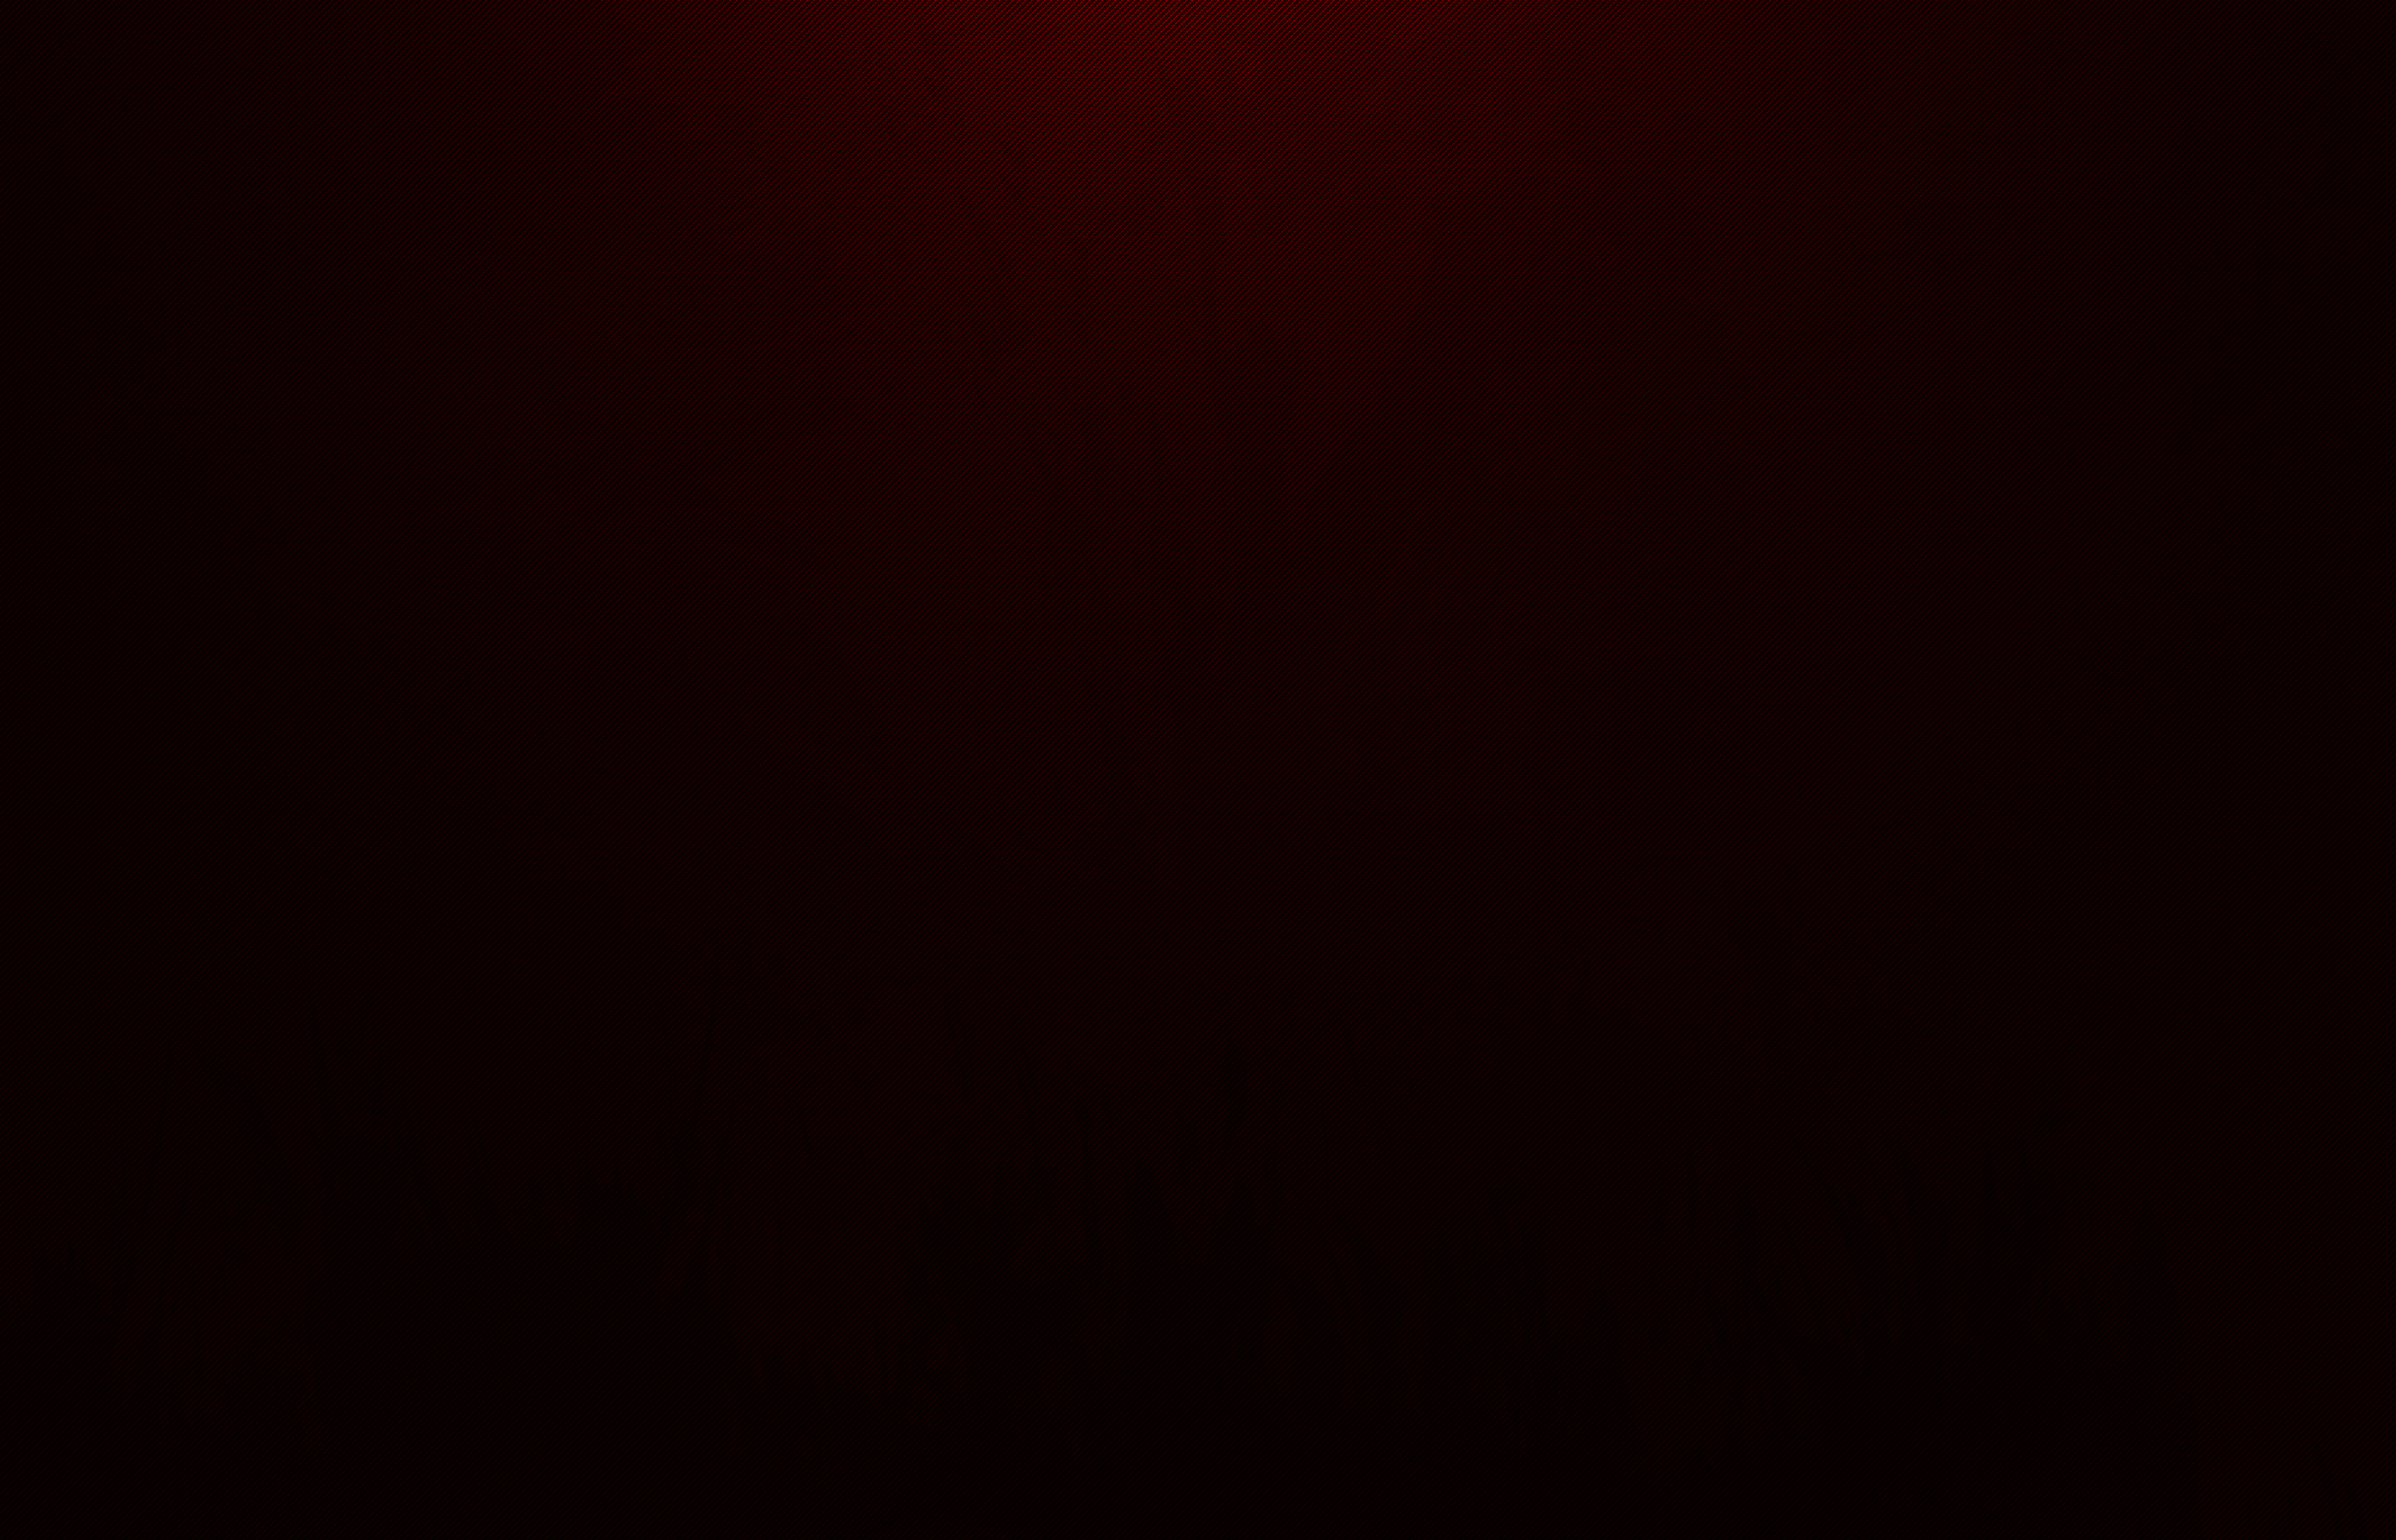 Dark red background wallpapersafari for Dark pattern background